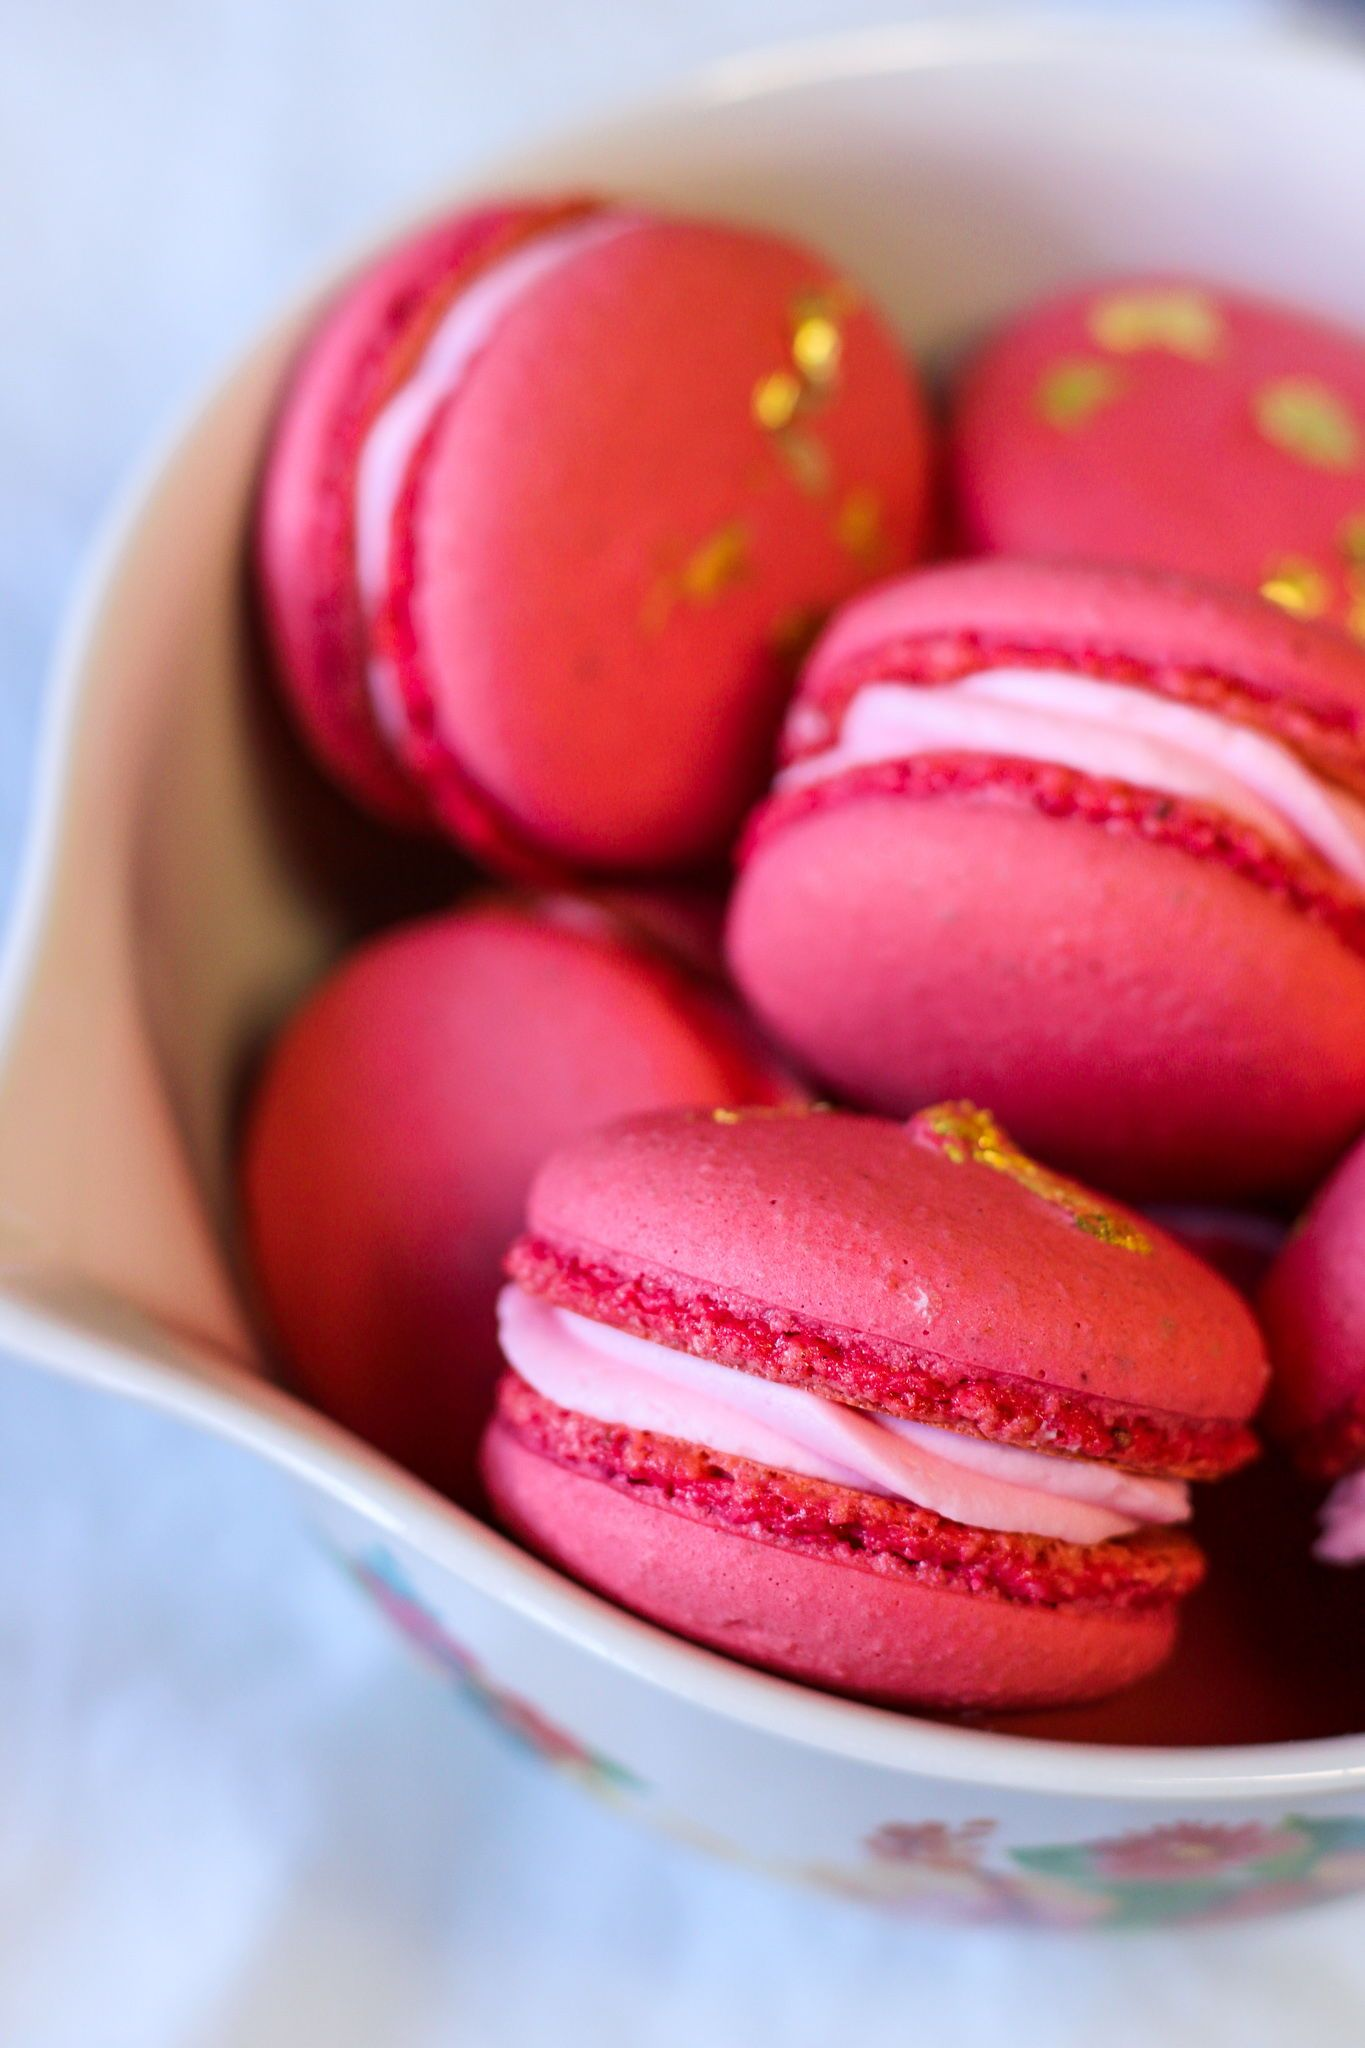 Strawberry Champagne And Rose Macarons Bakes And Blunders Recipe In 2020 Strawberry Macaron Macaron Flavors Wine Flavors